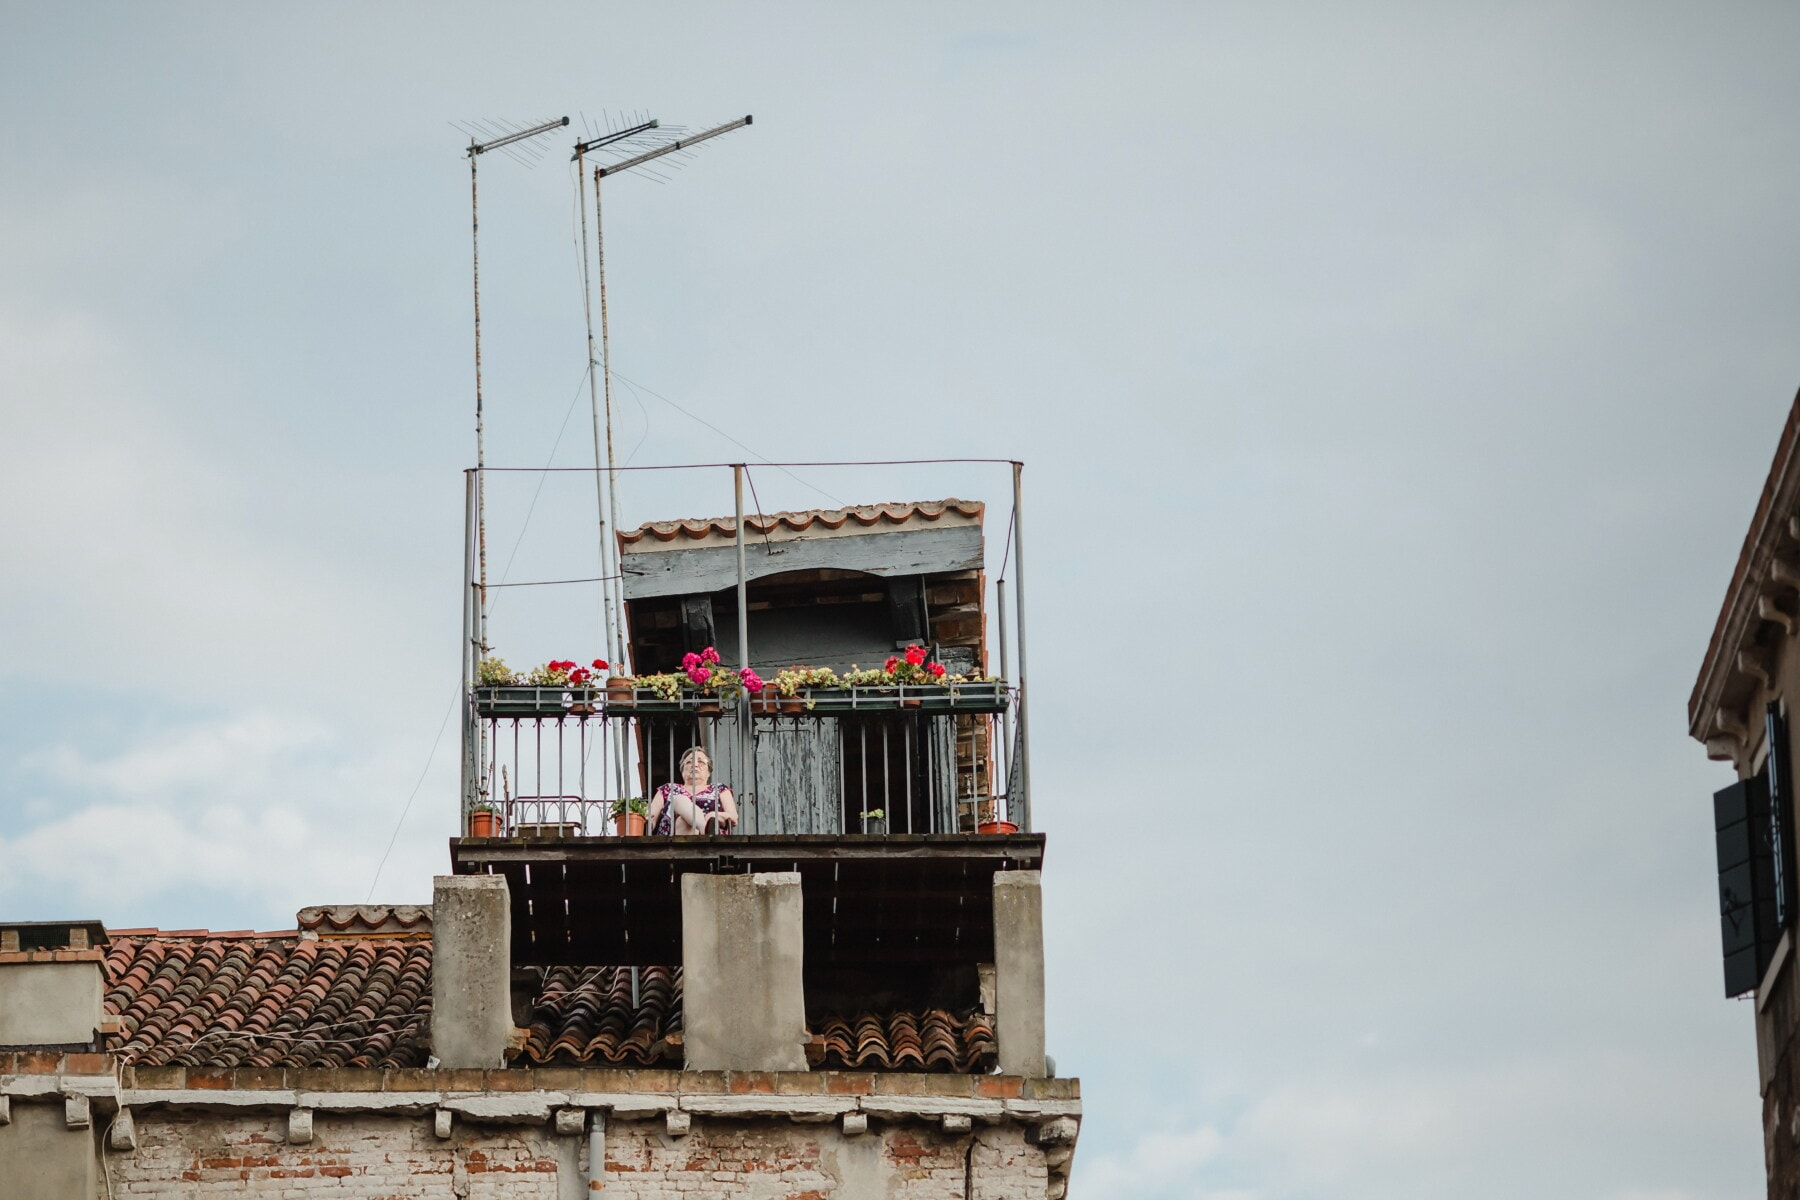 roof, grandmother, rooftop, garden, relaxation, architecture, city, building, street, urban